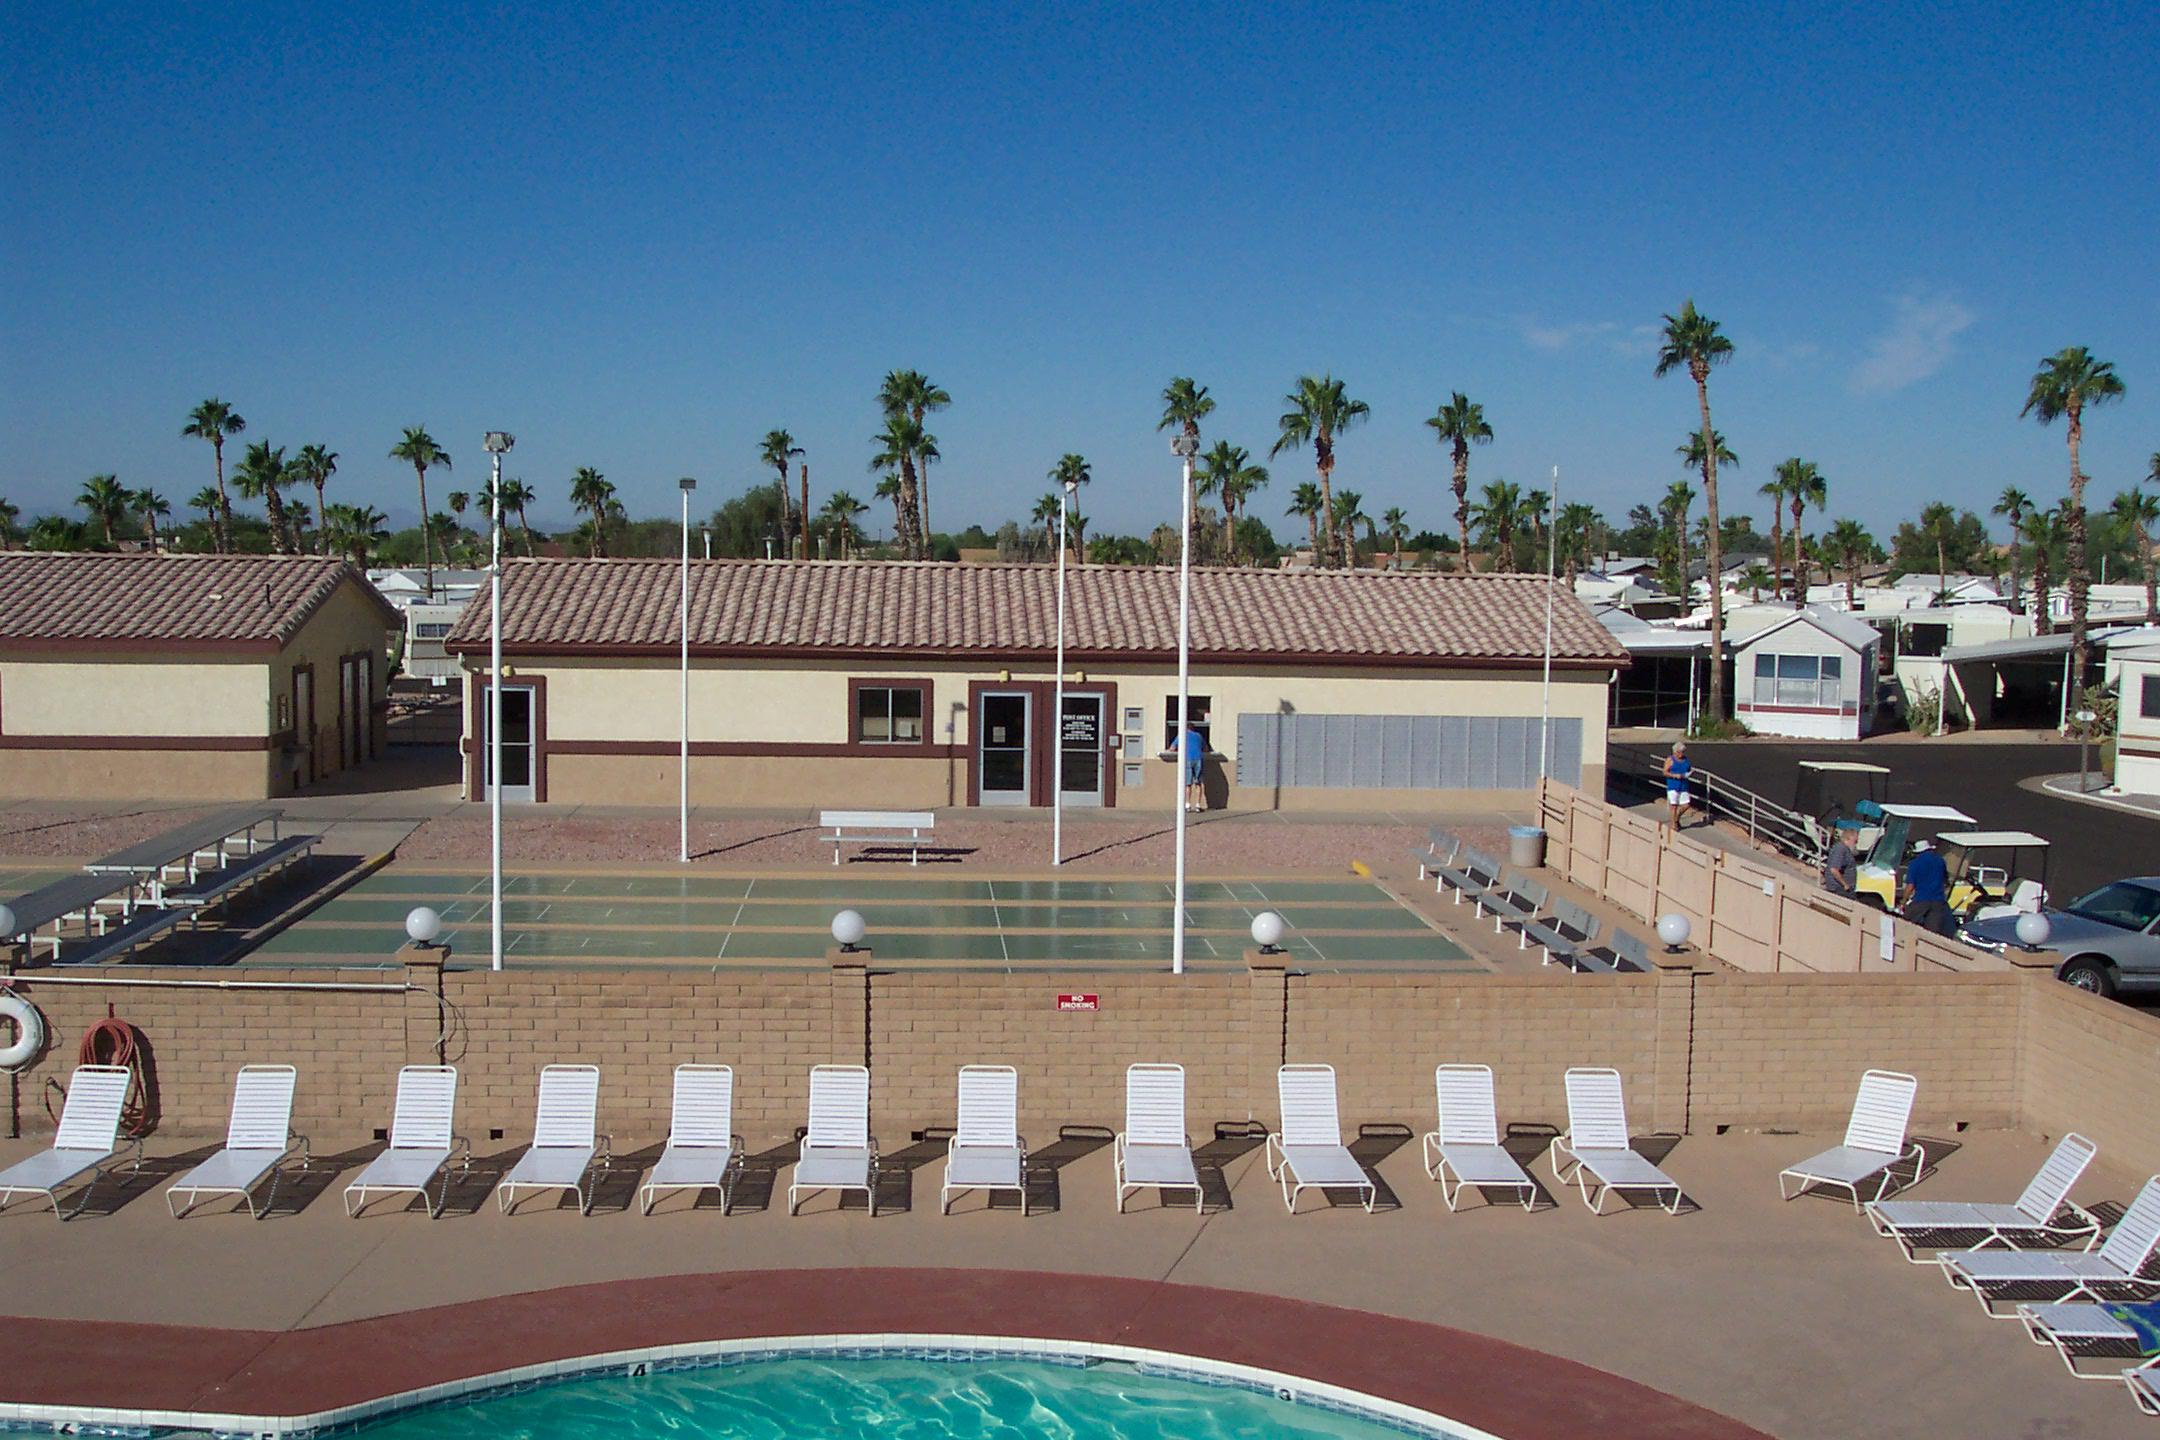 We have a large variety of activities to make your stay one you'll never forget.